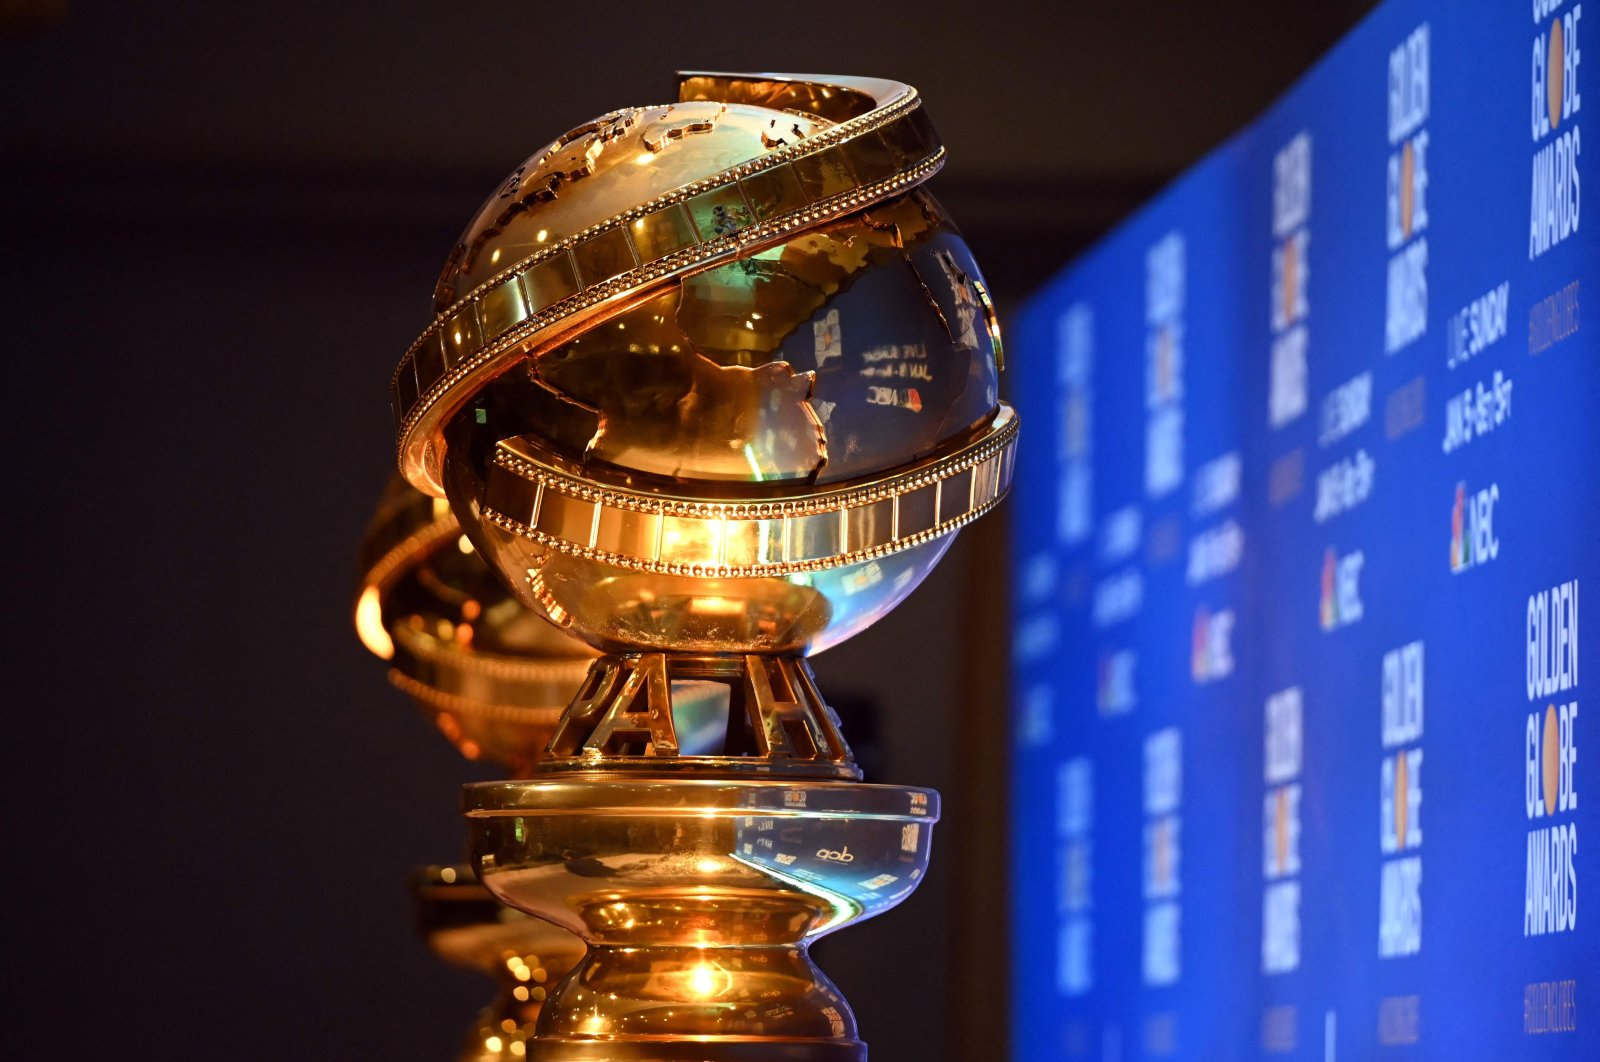 Golden Globe statues are set by the stage ahead of the 77th Annual Golden Globe Awards nominations announcement in Beverly Hills, California, on Dec. 9, 2019. (AFP Photo)